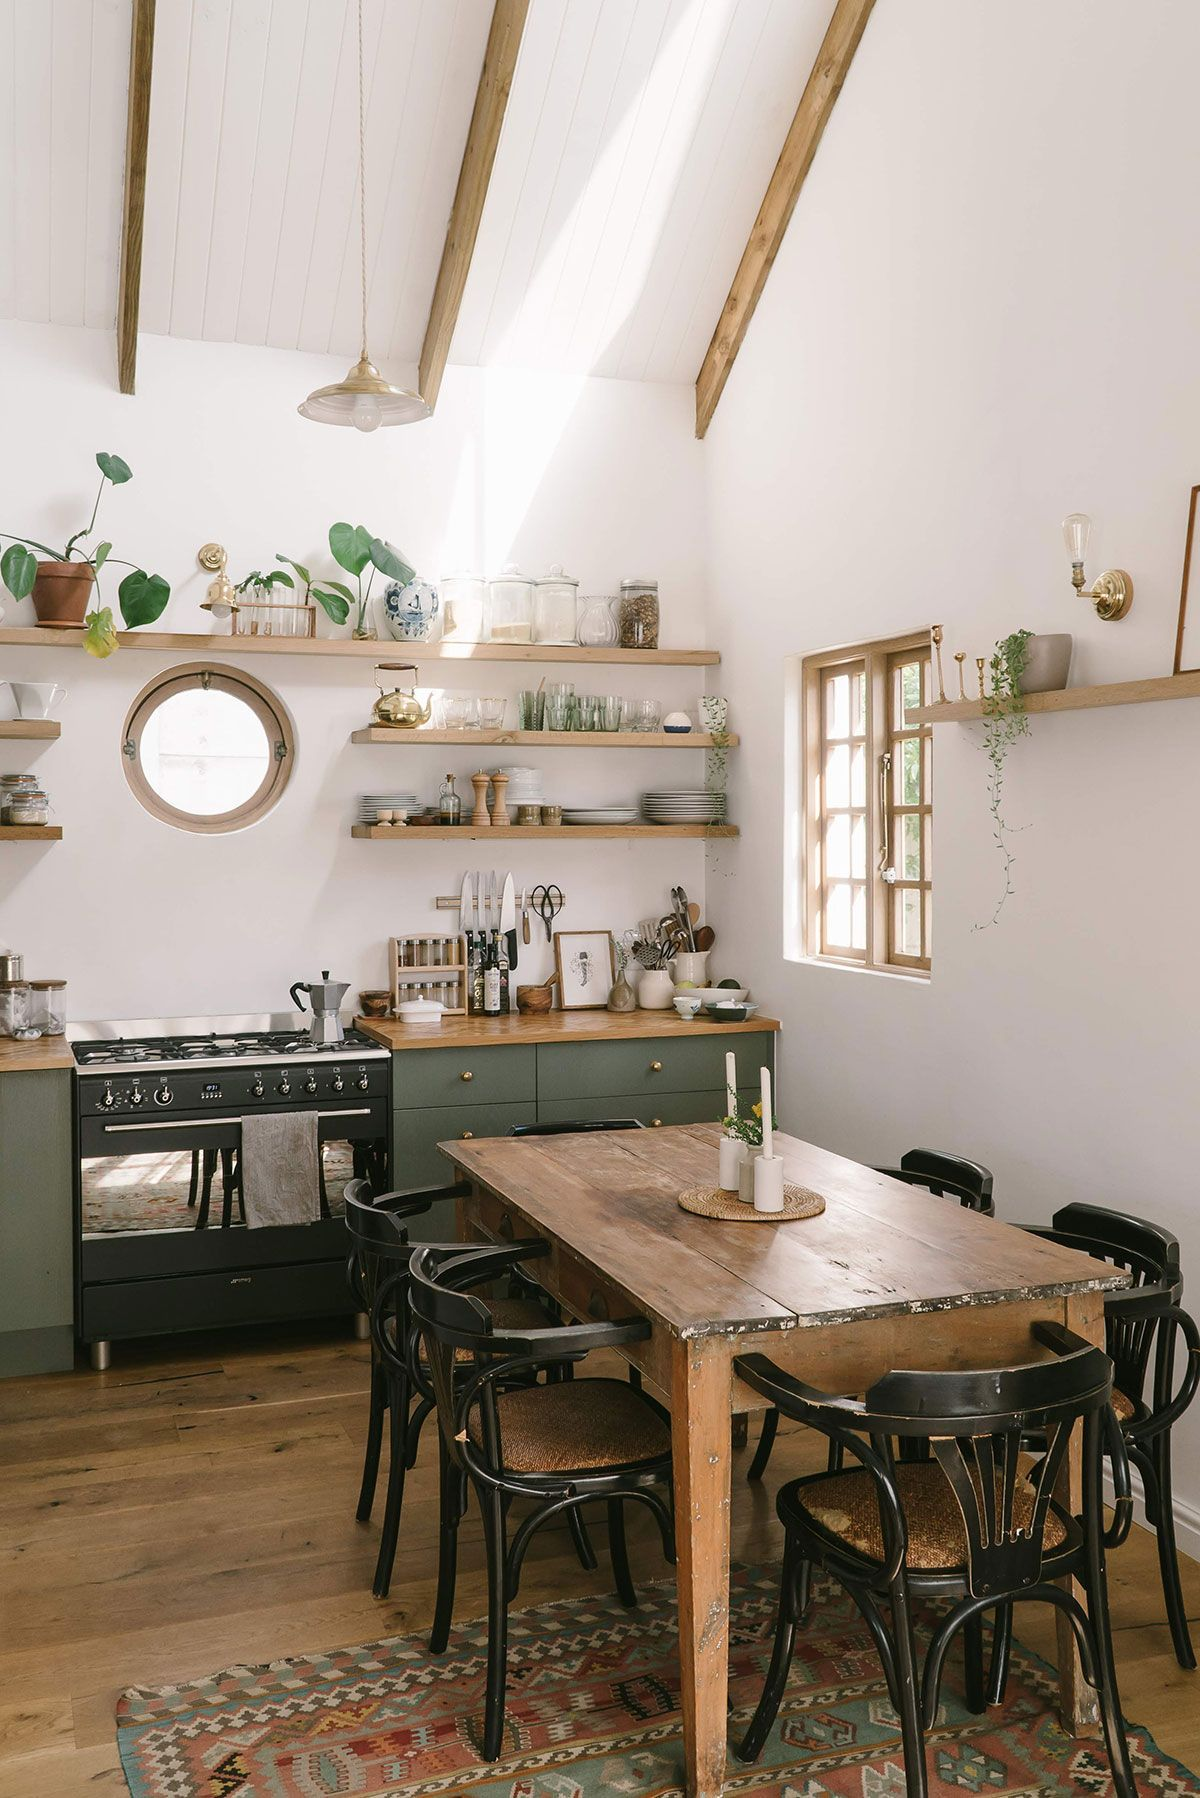 kitchen, wooden floor, wooden dining set, black wooden chairs, white wall, wooden open shelves, green bottom cabinet, wooden counter top, window